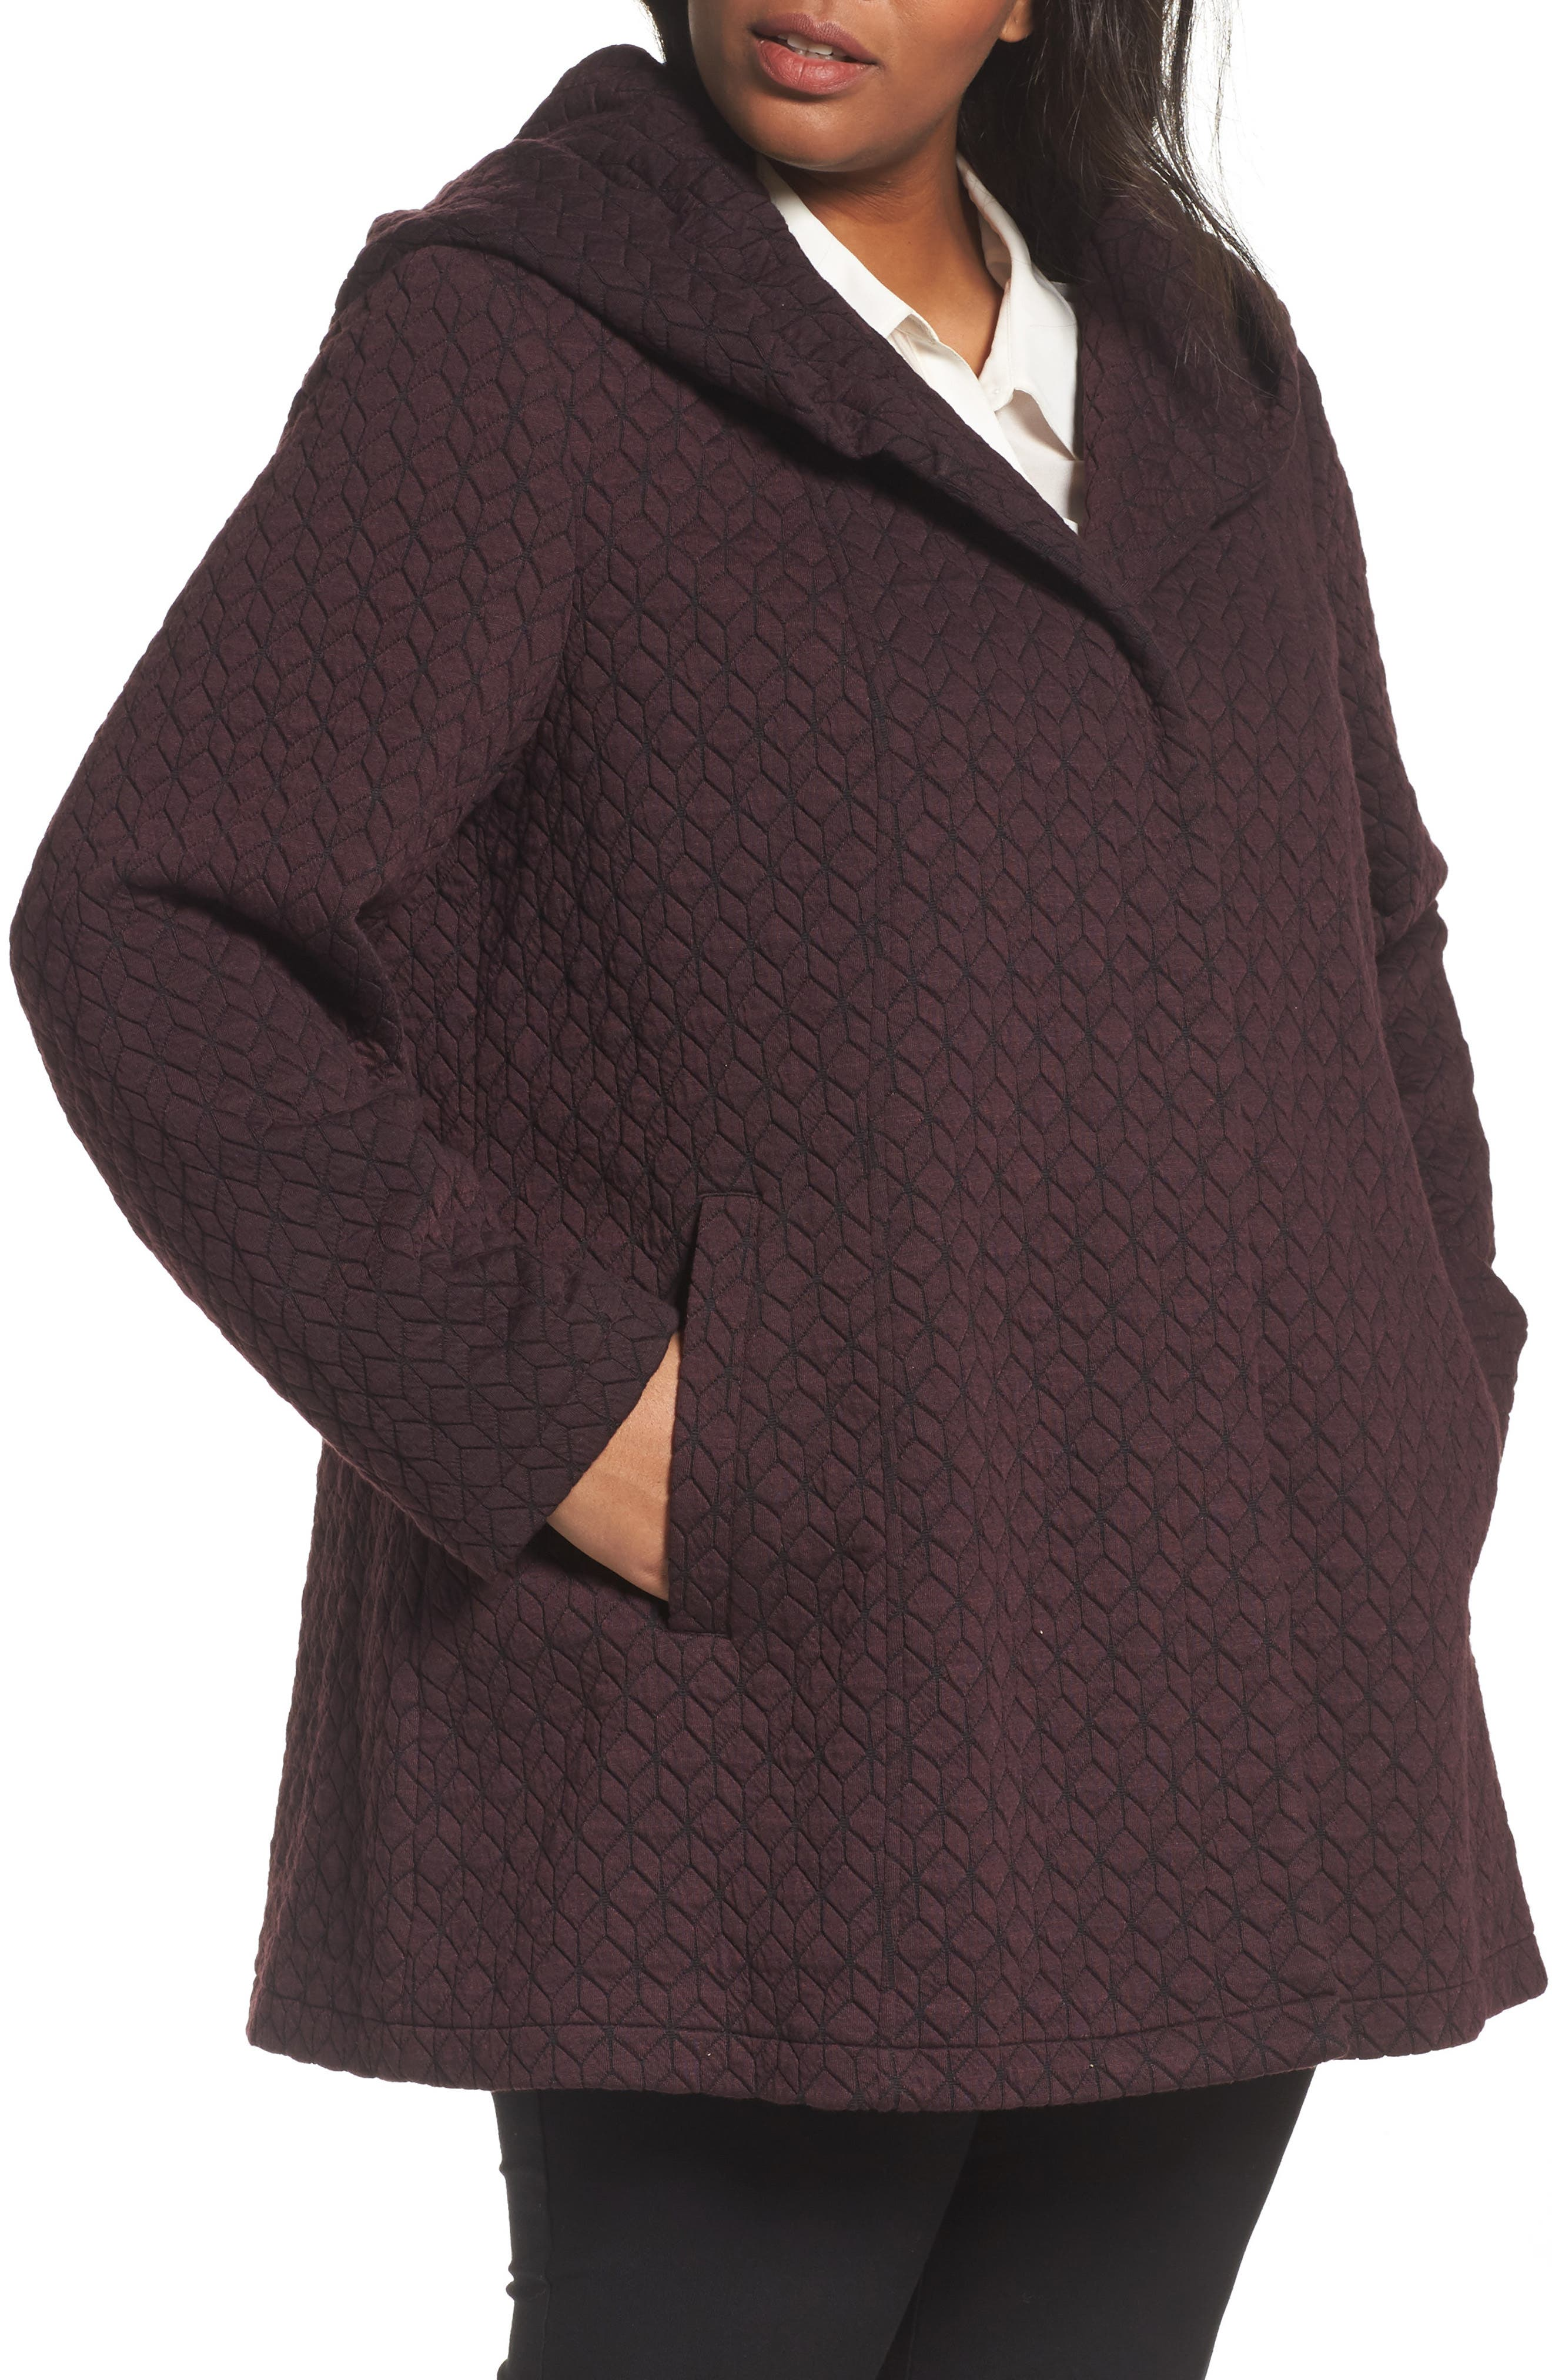 Alternate Image 1 Selected - Gallery Cozy Knit Coat (Plus Size)